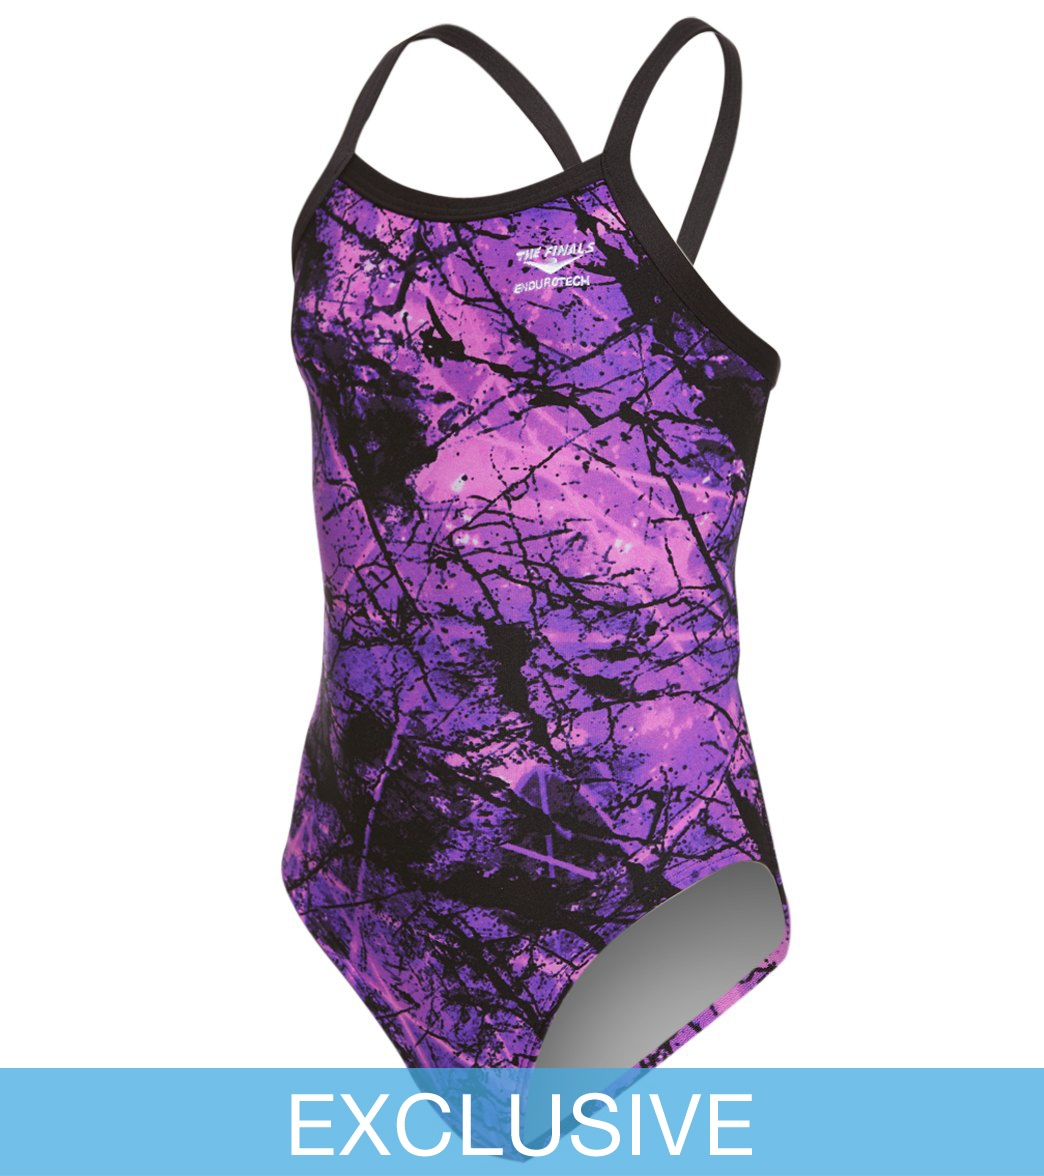 e34d5fbdd41 The Finals Girls' Amethyst Butterfly Back One Piece Swimsuit at ...